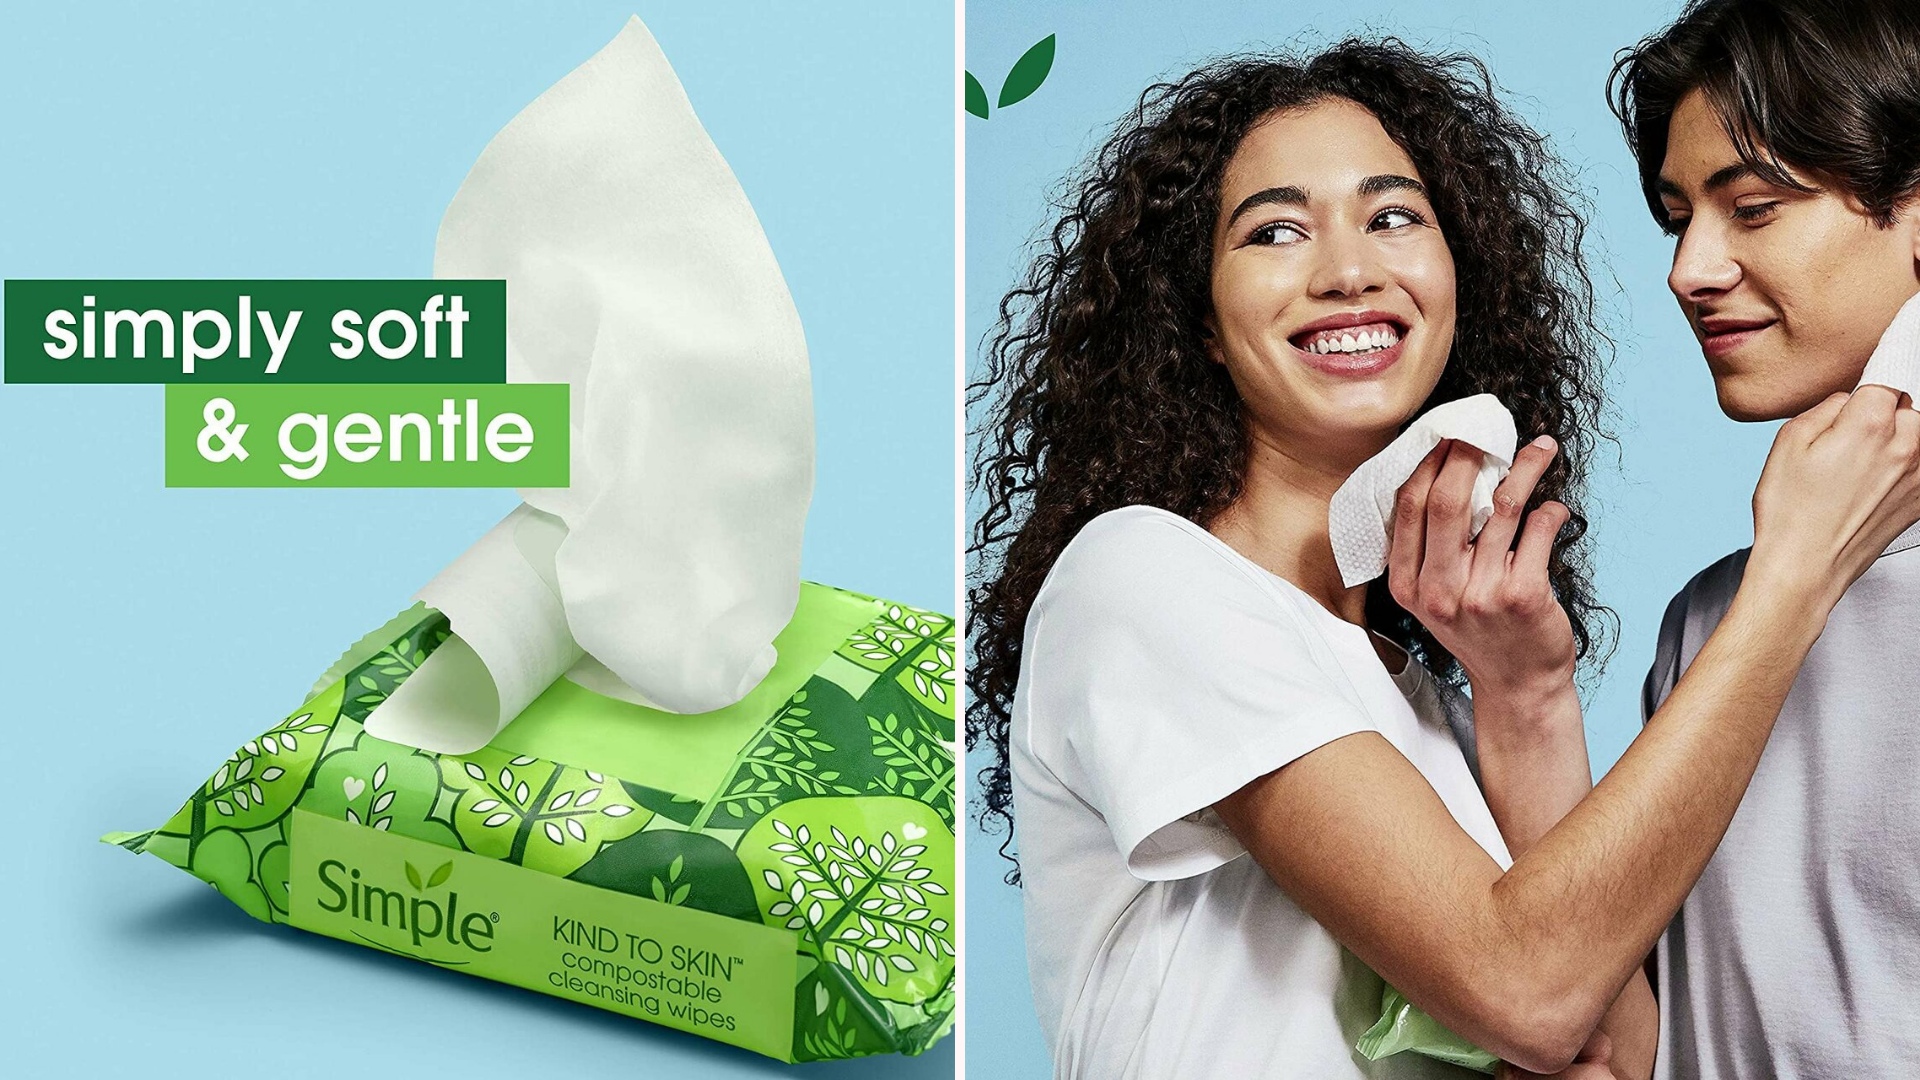 one image of simple makeup remover wipes in a green package and another image of a woman and man using them to clean their faces